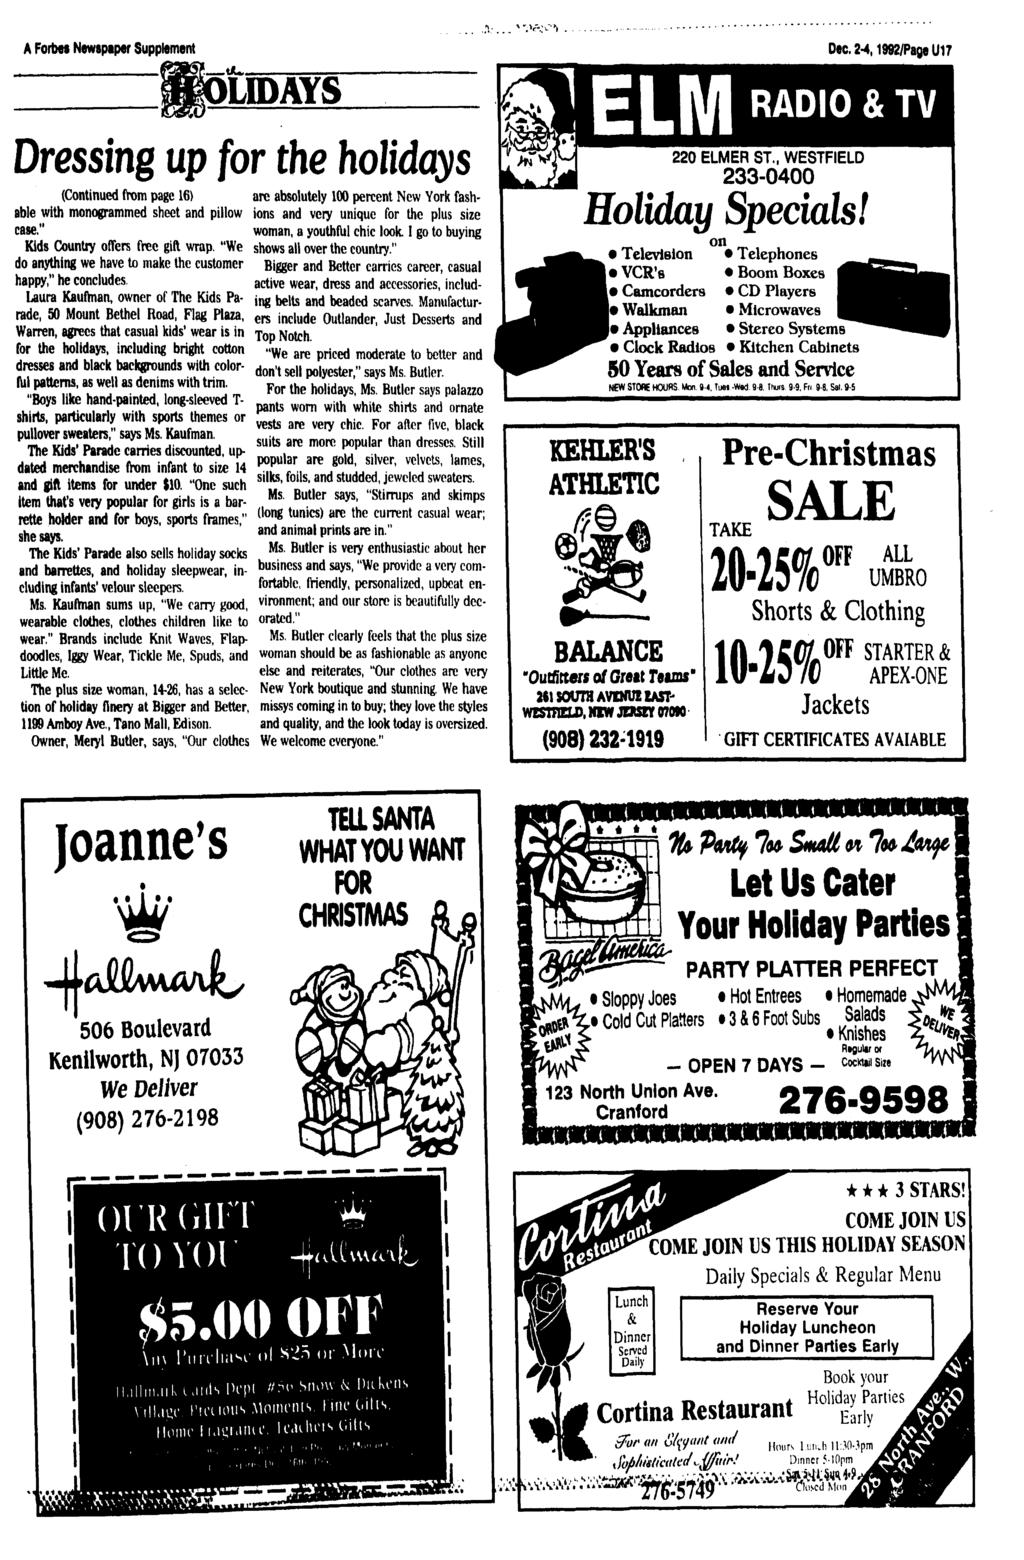 "A Forbes Newspiper Supplement Dec. 2-4,1992/Page U17 LIDAYS Dressing up for the holidays (Continued from page 16) able with monogrammed sheet and pillow case."" Kids Country offers free gift wrap."